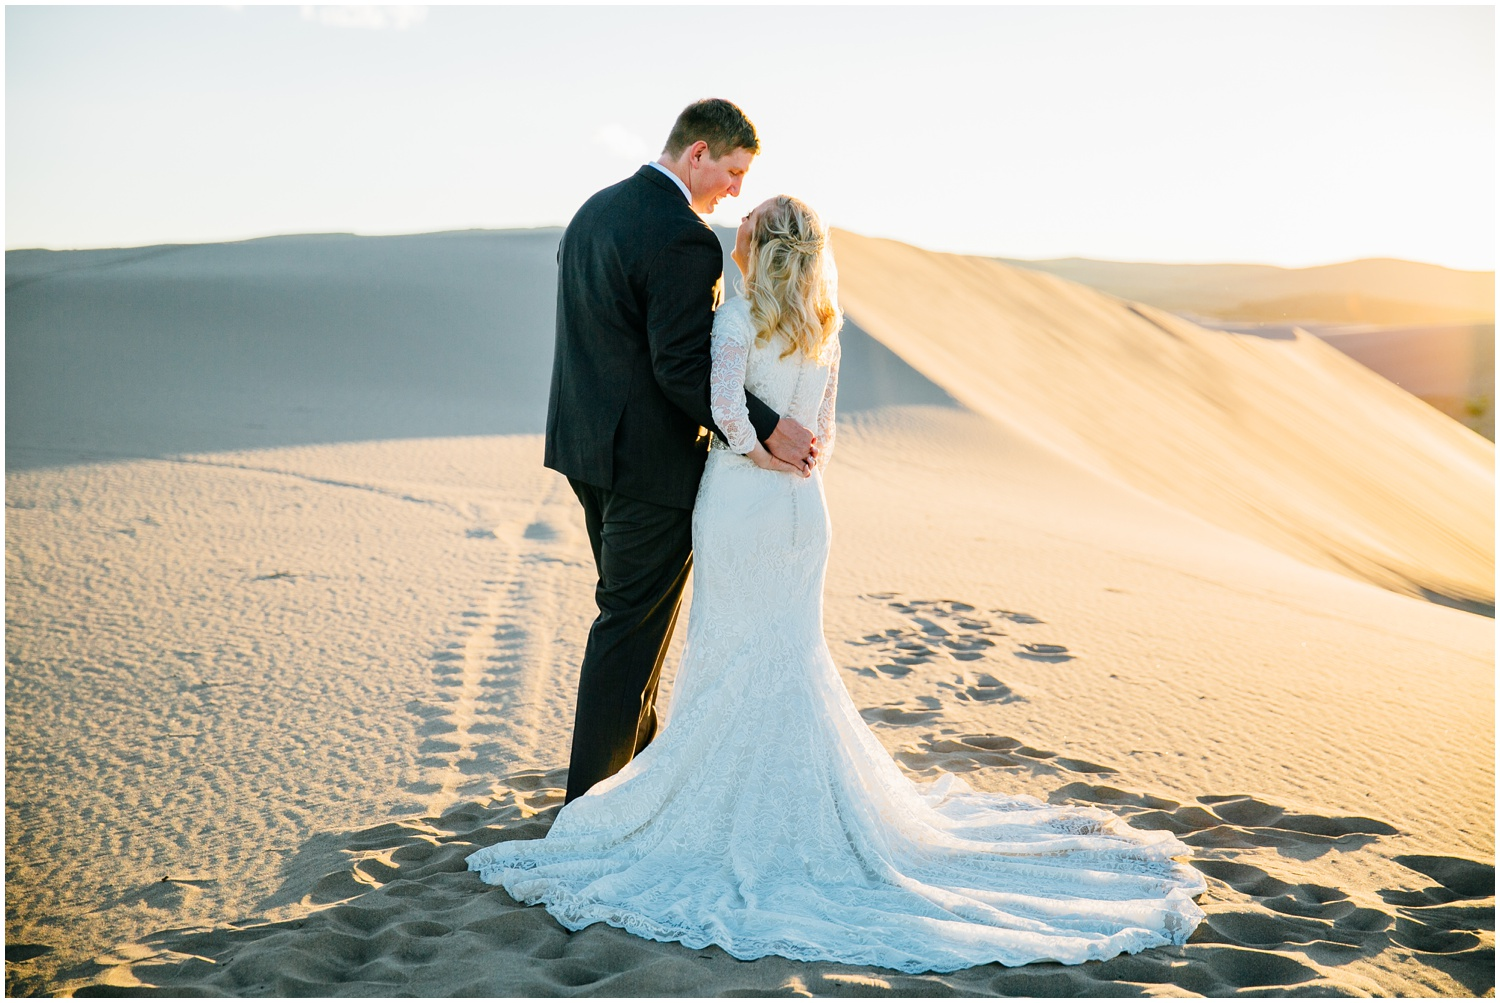 saint-anthony-sand-dunes-bridals-idaho-engagements-colorado-wyoming-wedding-photographer_0742.jpg